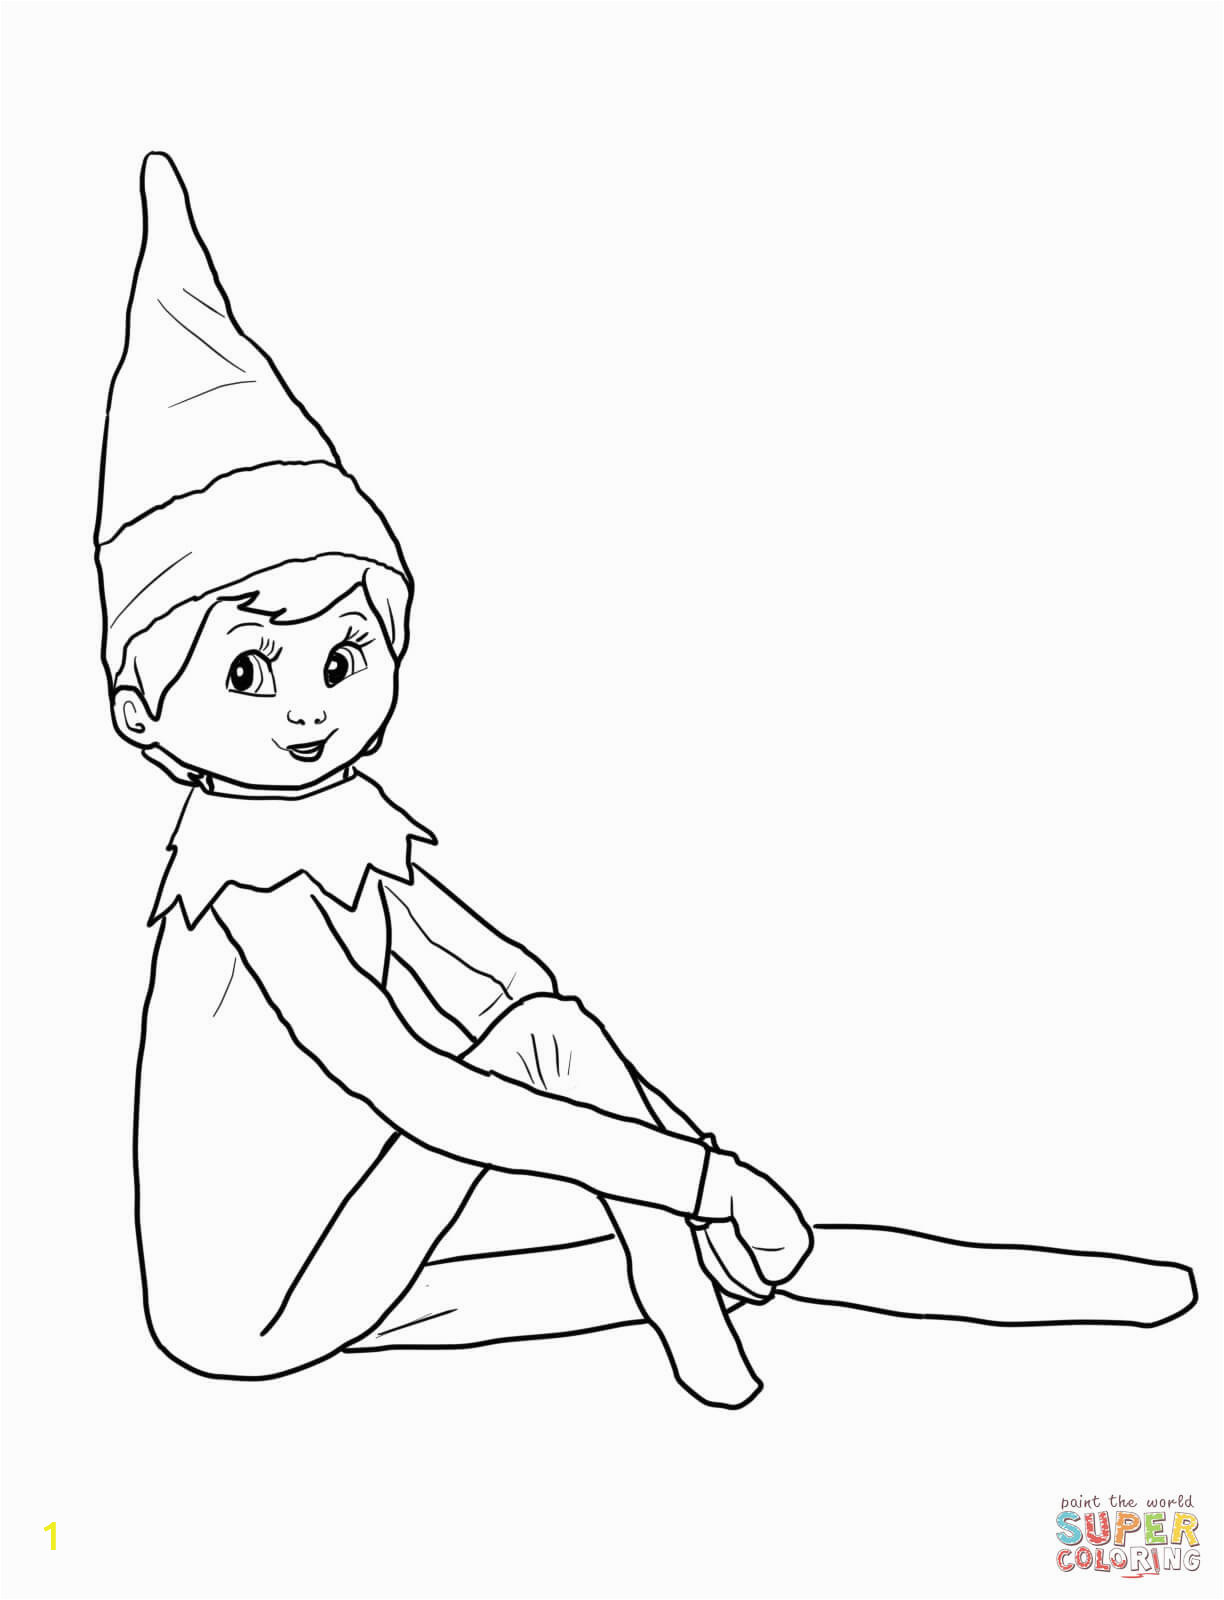 Elf On the Shelf Coloring Pages Girl Elf the Shelf Coloring Pages Printable Christmas Printables